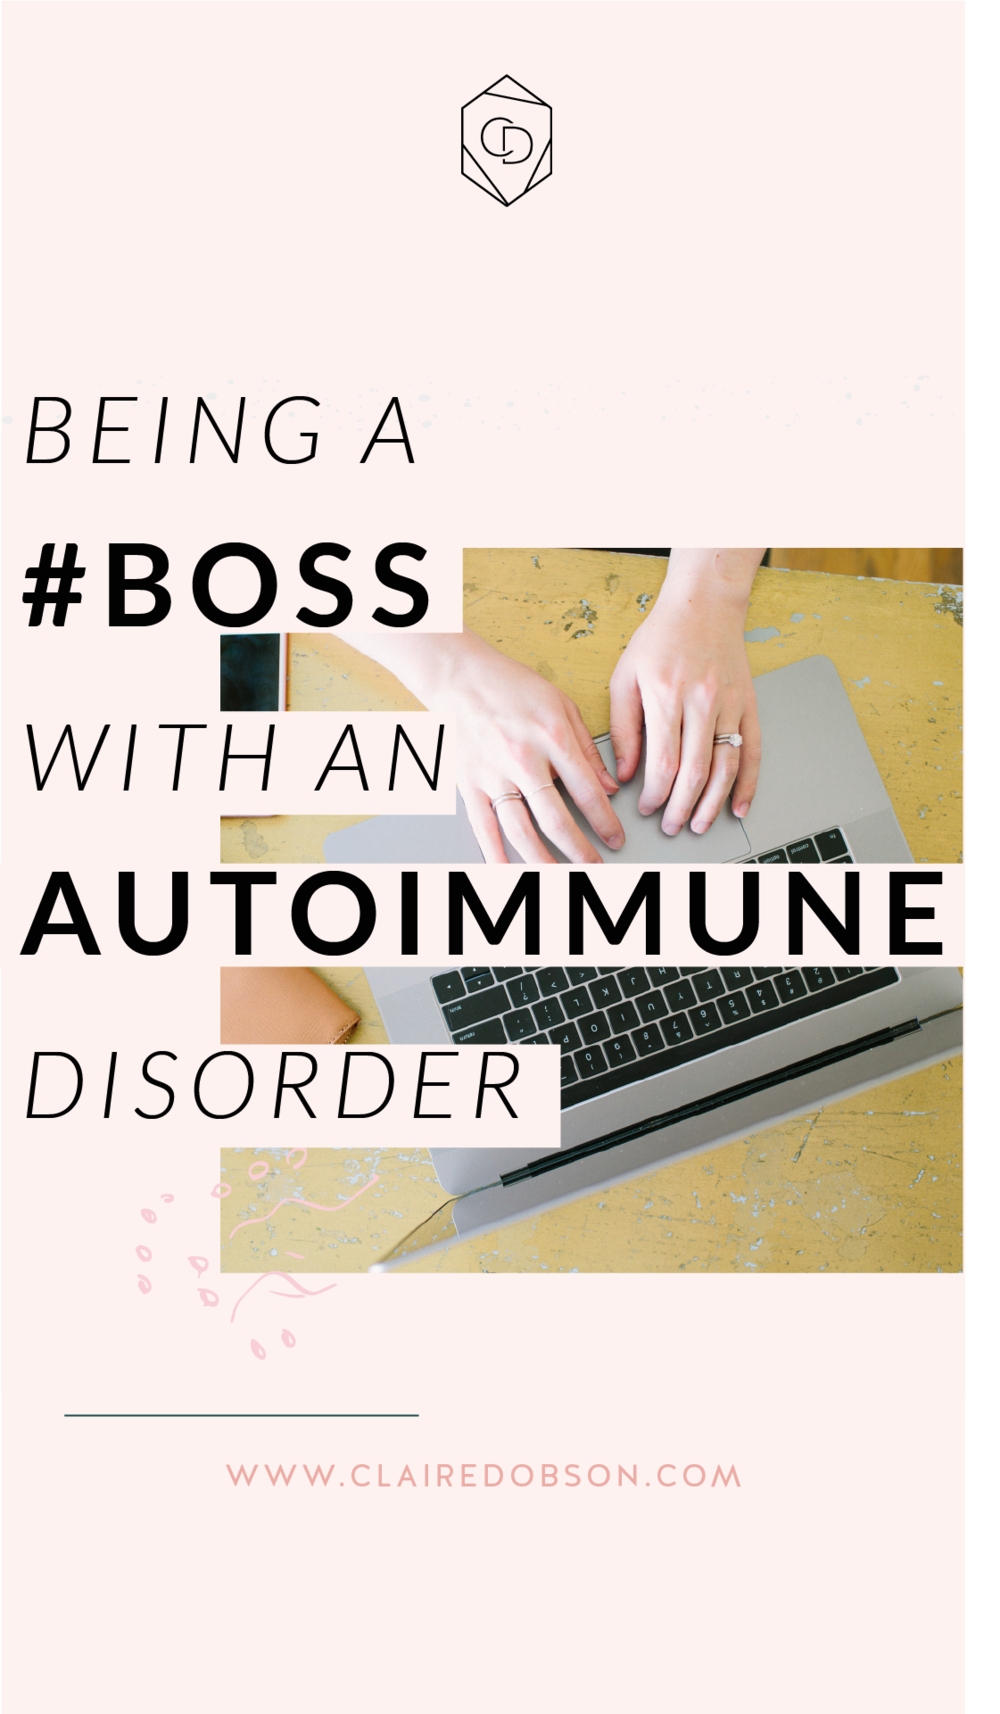 Living with #Lupus and an #autoimmune disease is something I struggle with every day. Read about my real world battle with it and being a creative entrepreneur on my blog where I get real vulnerable. If you're struggling with an autoimmune disorder I understand. #automimmunedisorder #illness #health